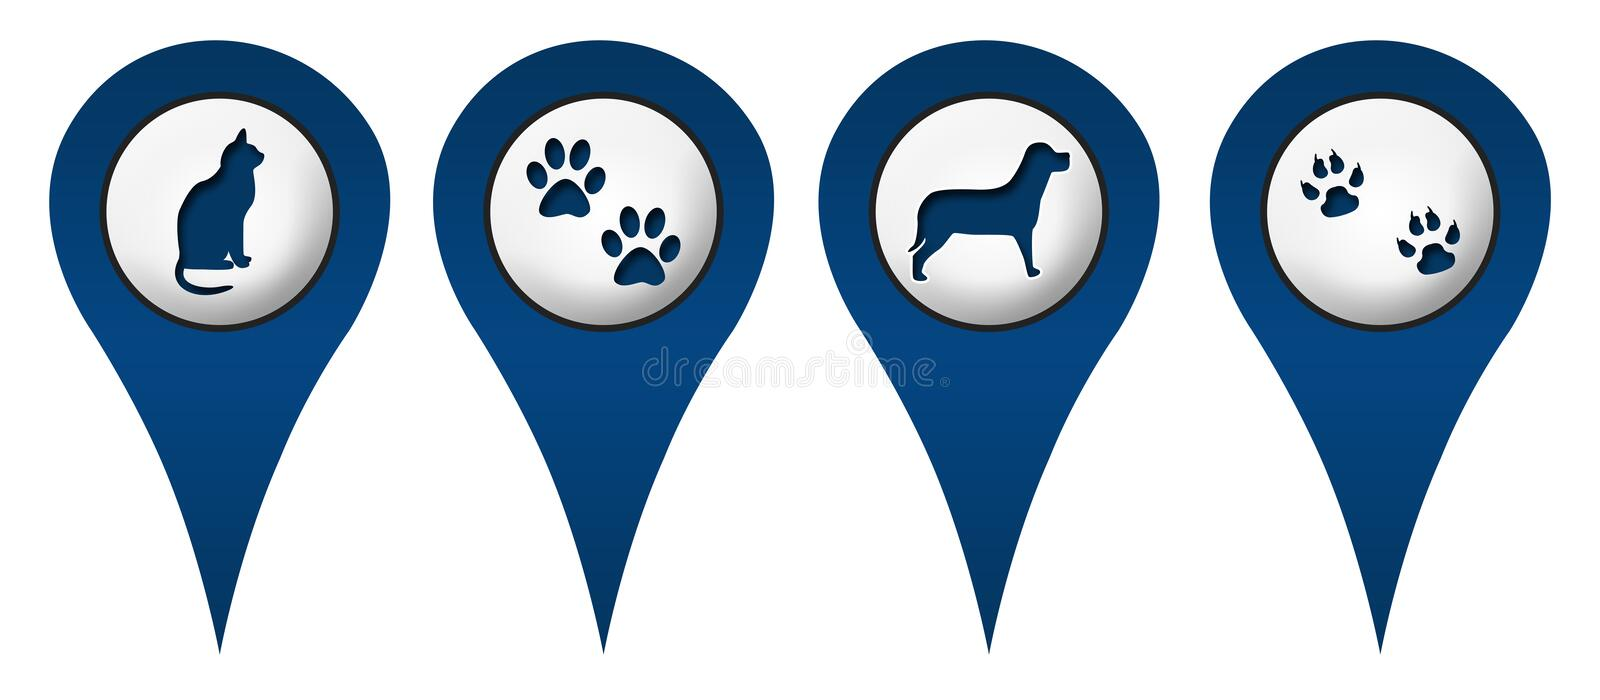 Cat Dog Paws Location Icons. Cat, dog and paws impressions on locations symbols vector illustration